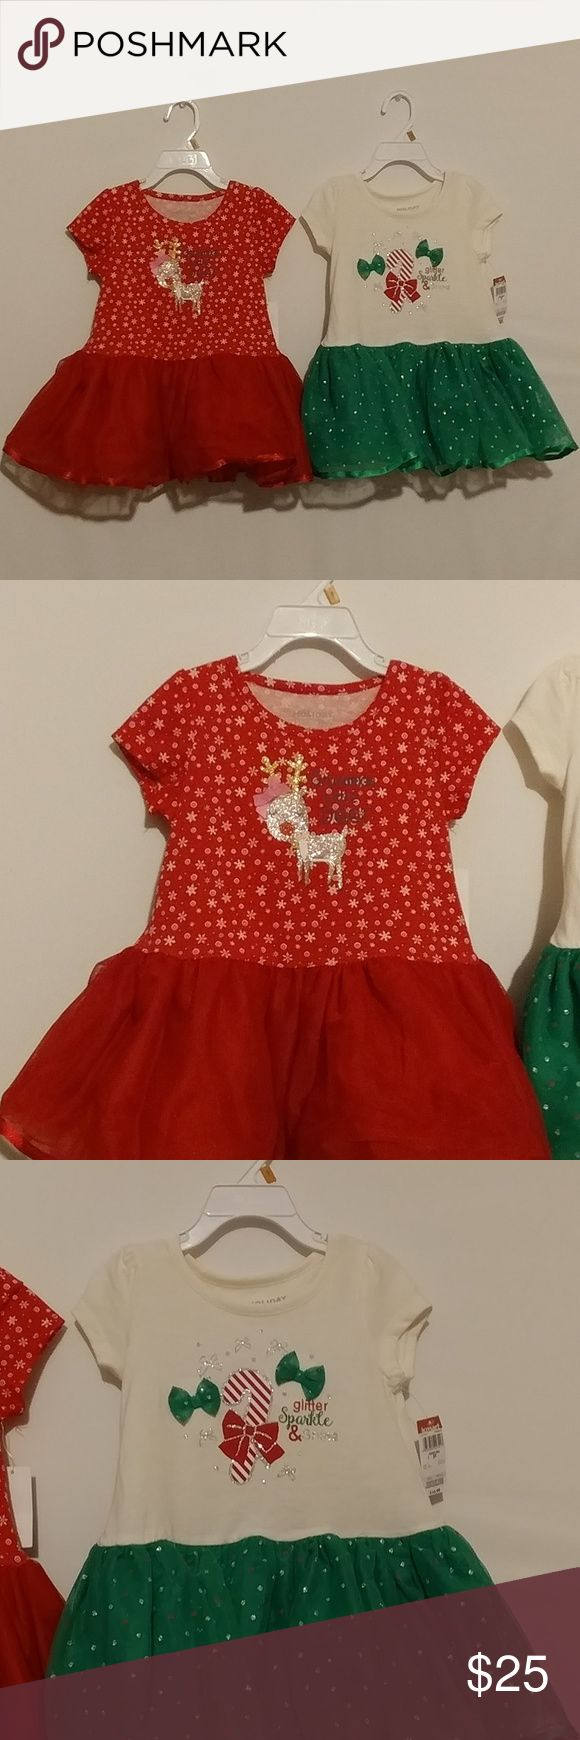 Girls Christmas dresses It's this time of season girls cute and festive Christmas dresses brand new set of 2 Dresses